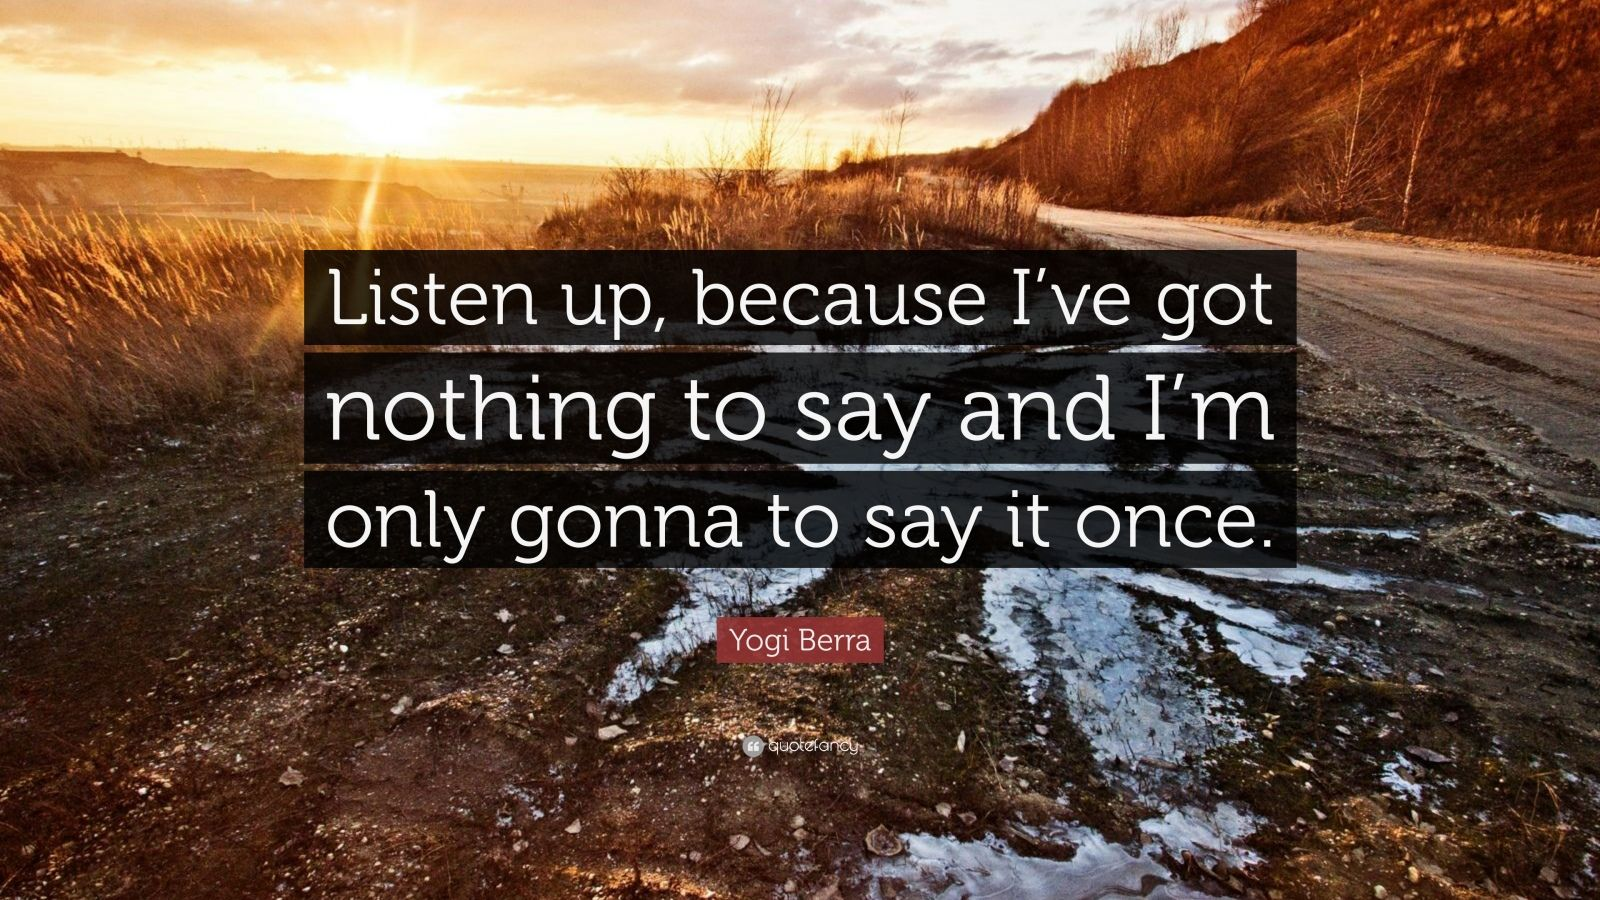 """Yogi Berra Quote: """"Listen up, because I've got nothing to say and I'm only gonna to say it once."""""""